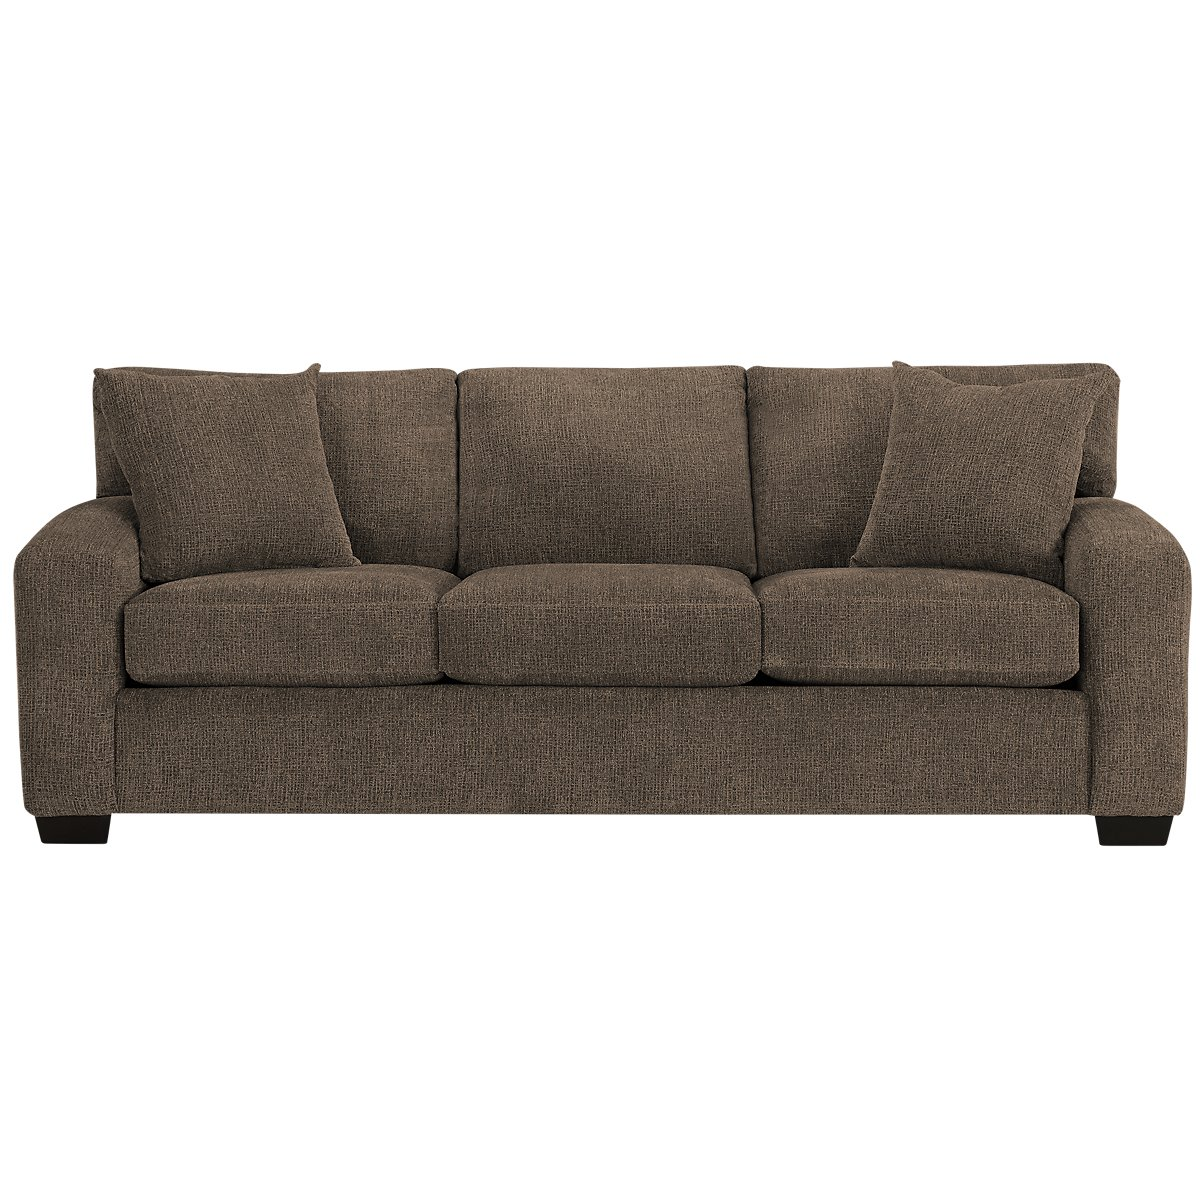 City Furniture Adam Dark Brown Microfiber Sofa